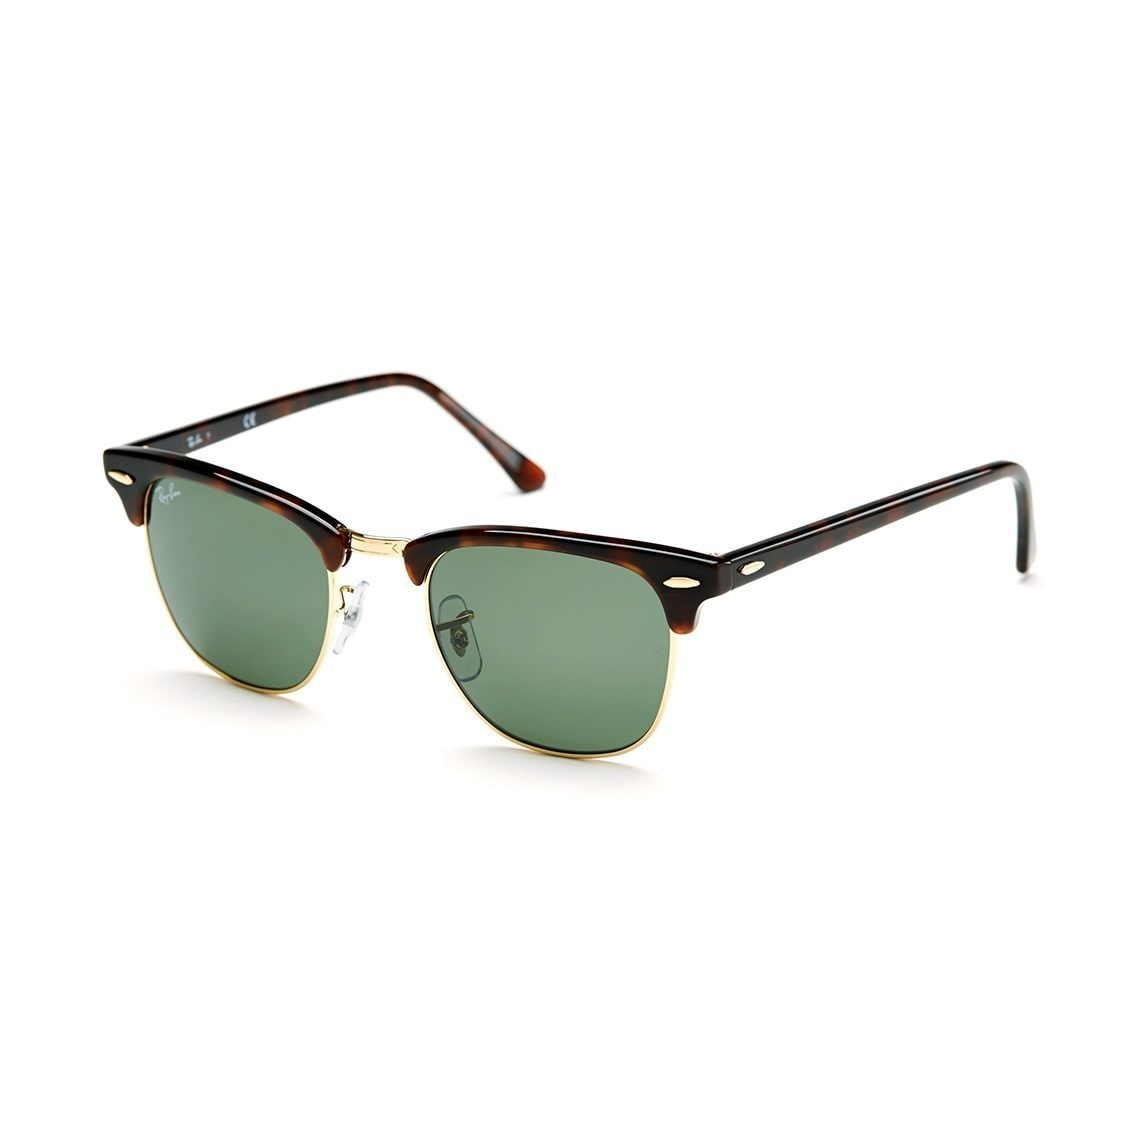 405144e160c051 Ray-Ban Clubmaster RB 3016 Unisex Tortoise Frame Green Classic Lens  Sunglasses